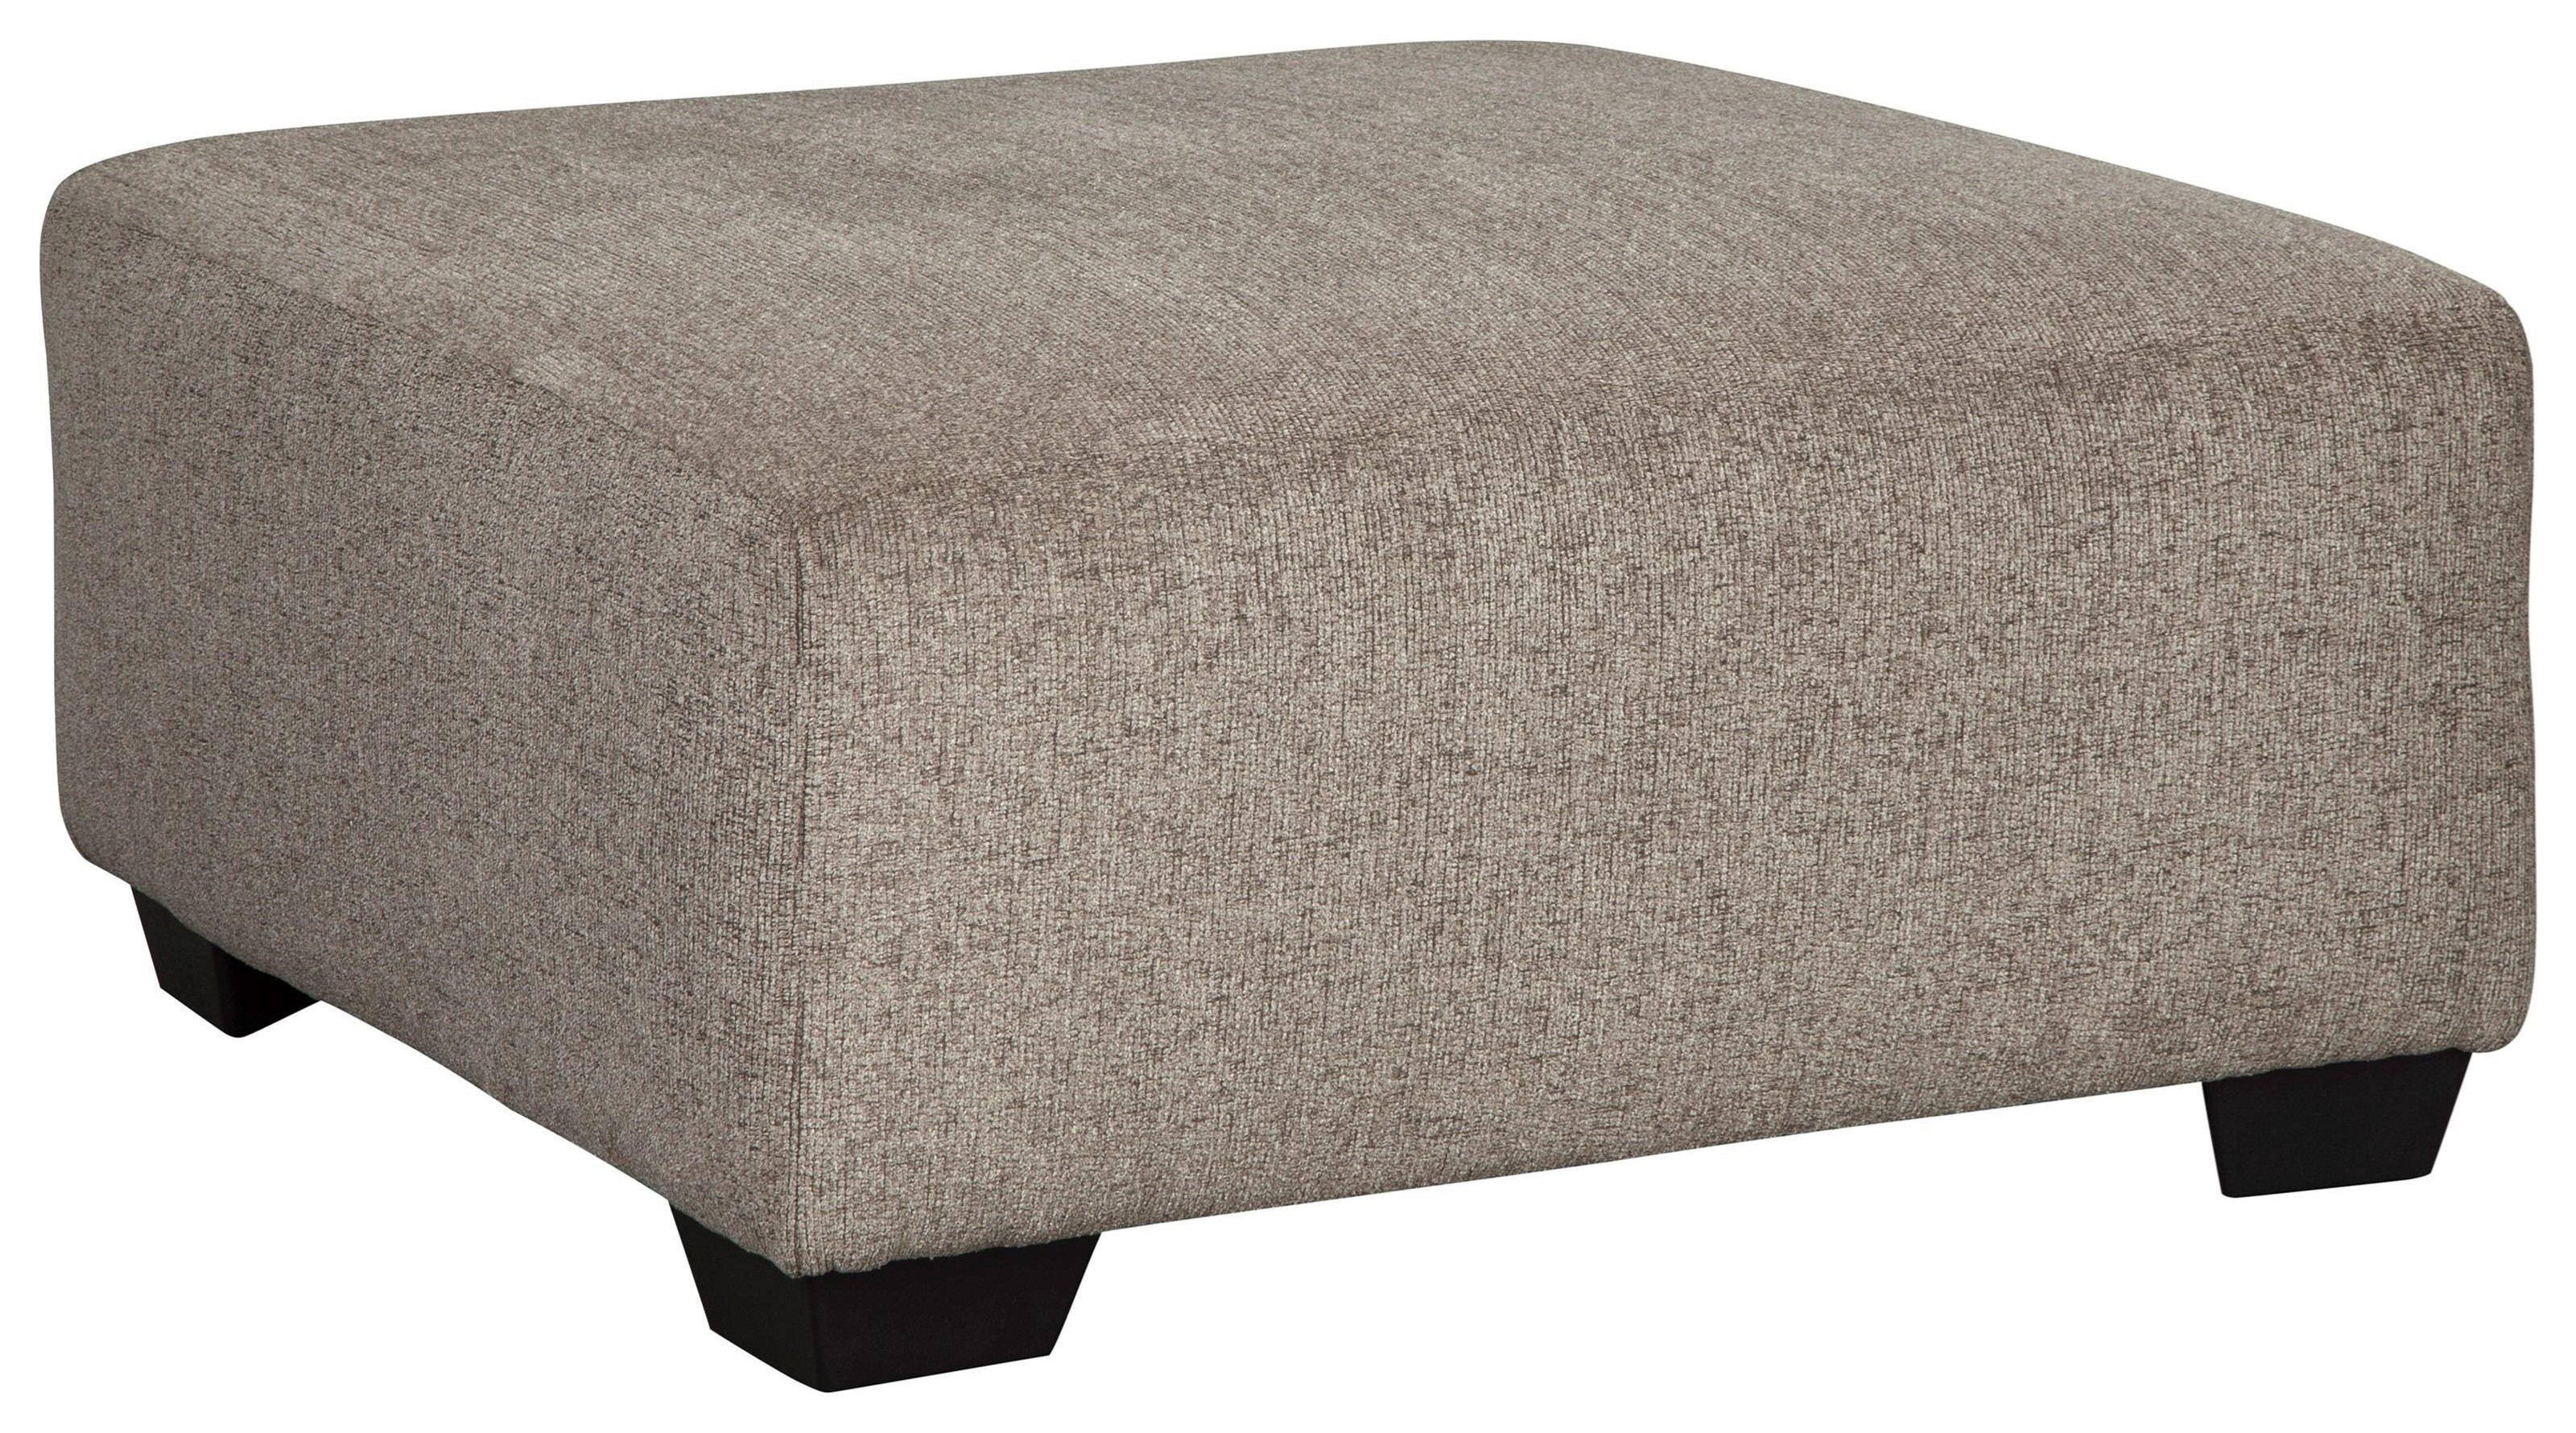 Oversized Ottoman FREE with Your Purchase